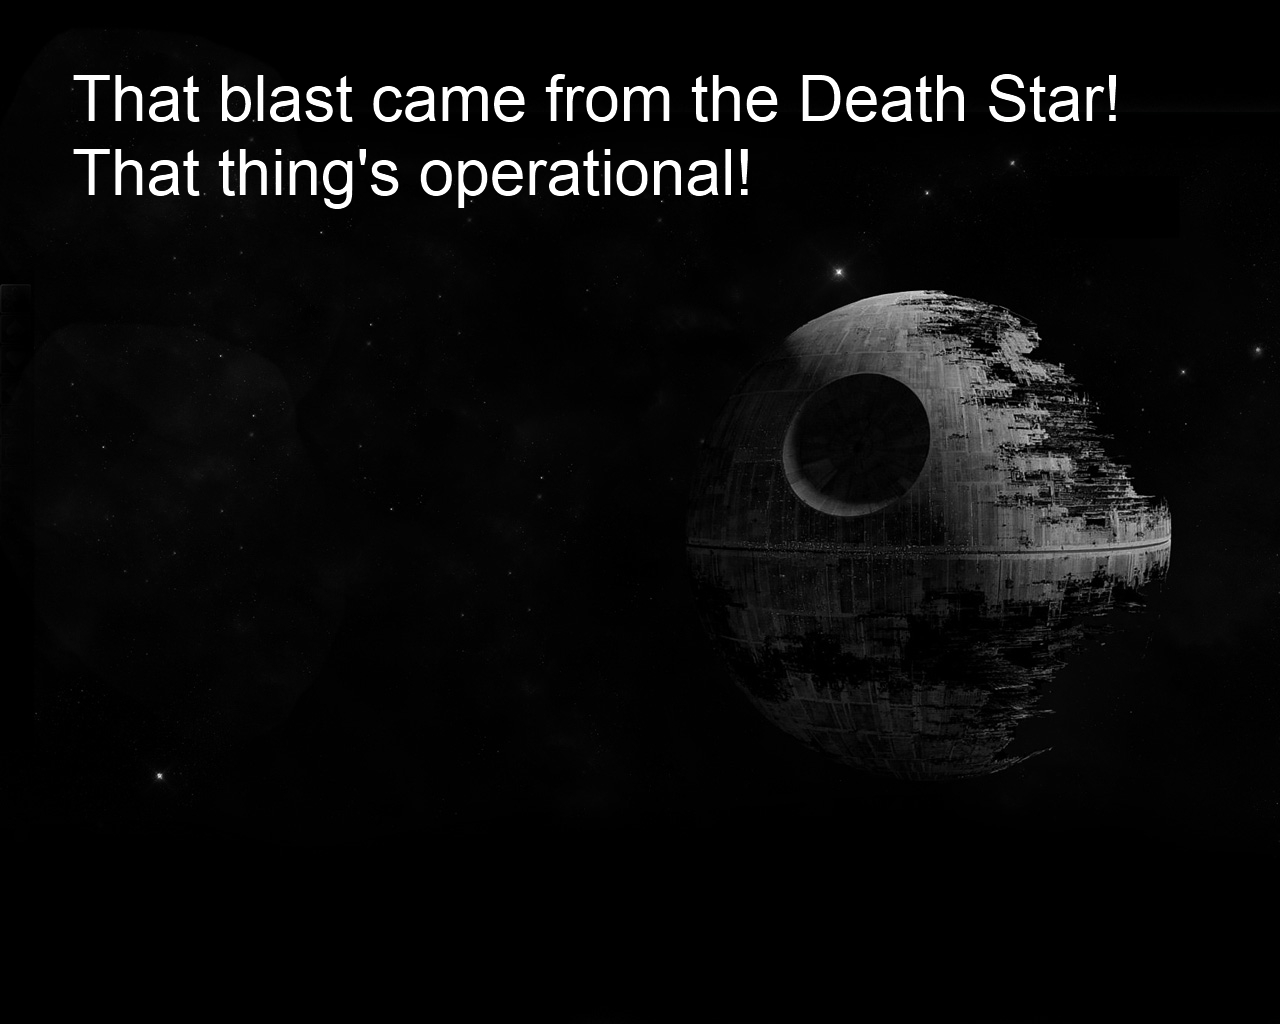 Quotes On Death That Blast Came From The Death Star  Star Wars Quotes  Star Wars